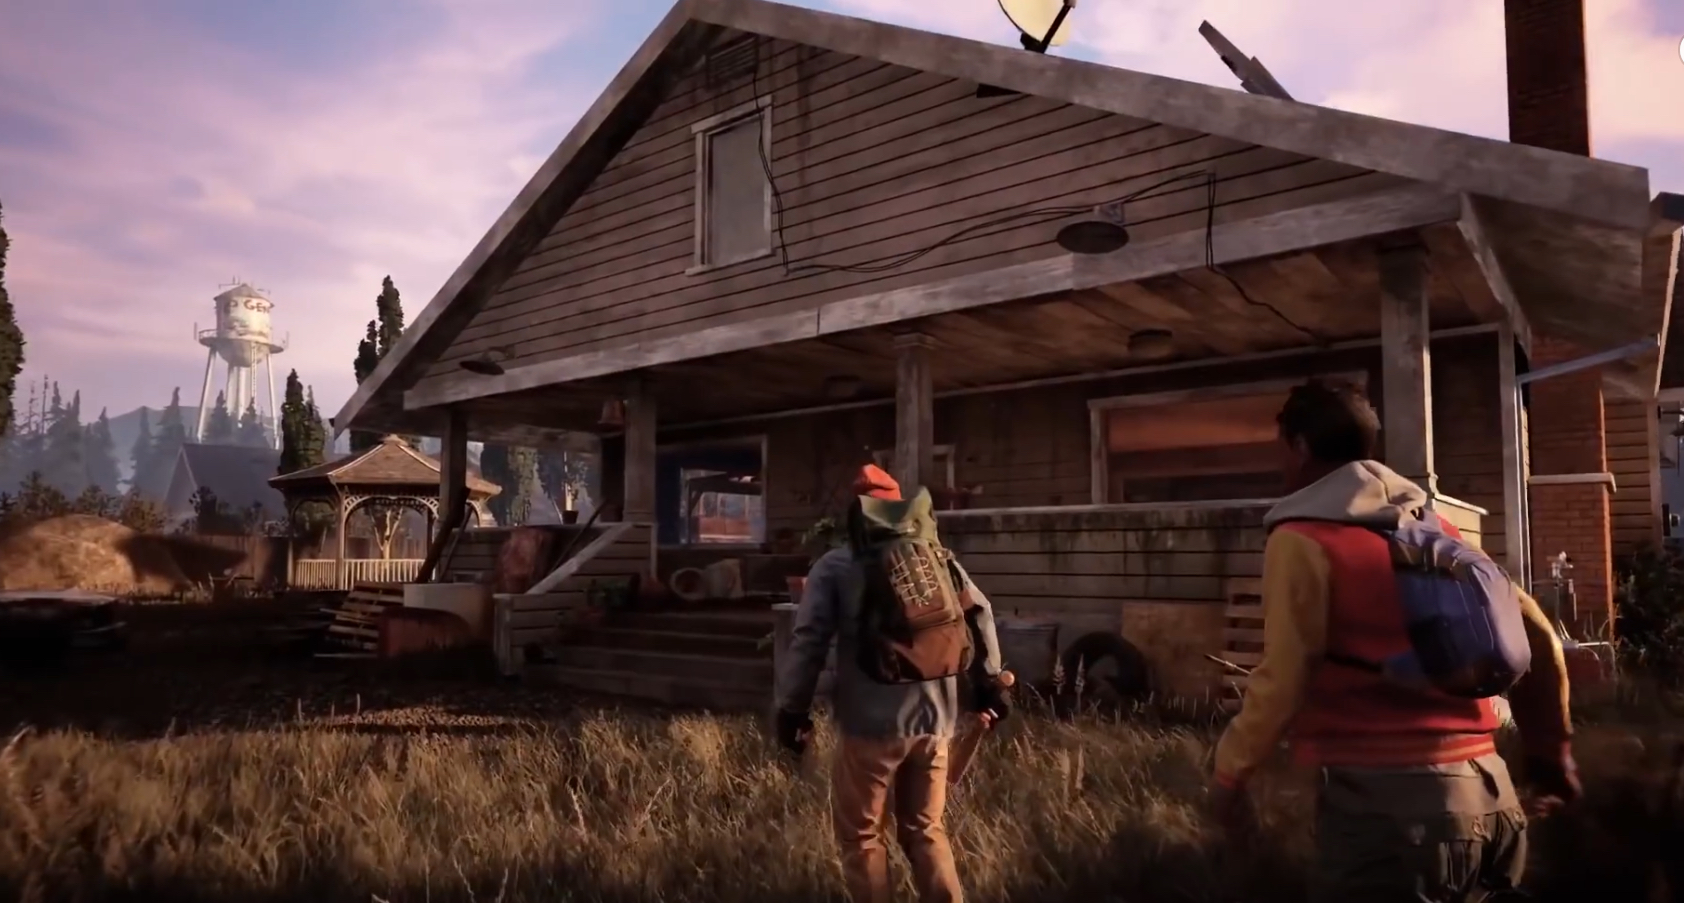 The Juggernaut Edition Of State Of Decay 2 Arrives On Steam In March; Includes A Lot Of Improvements